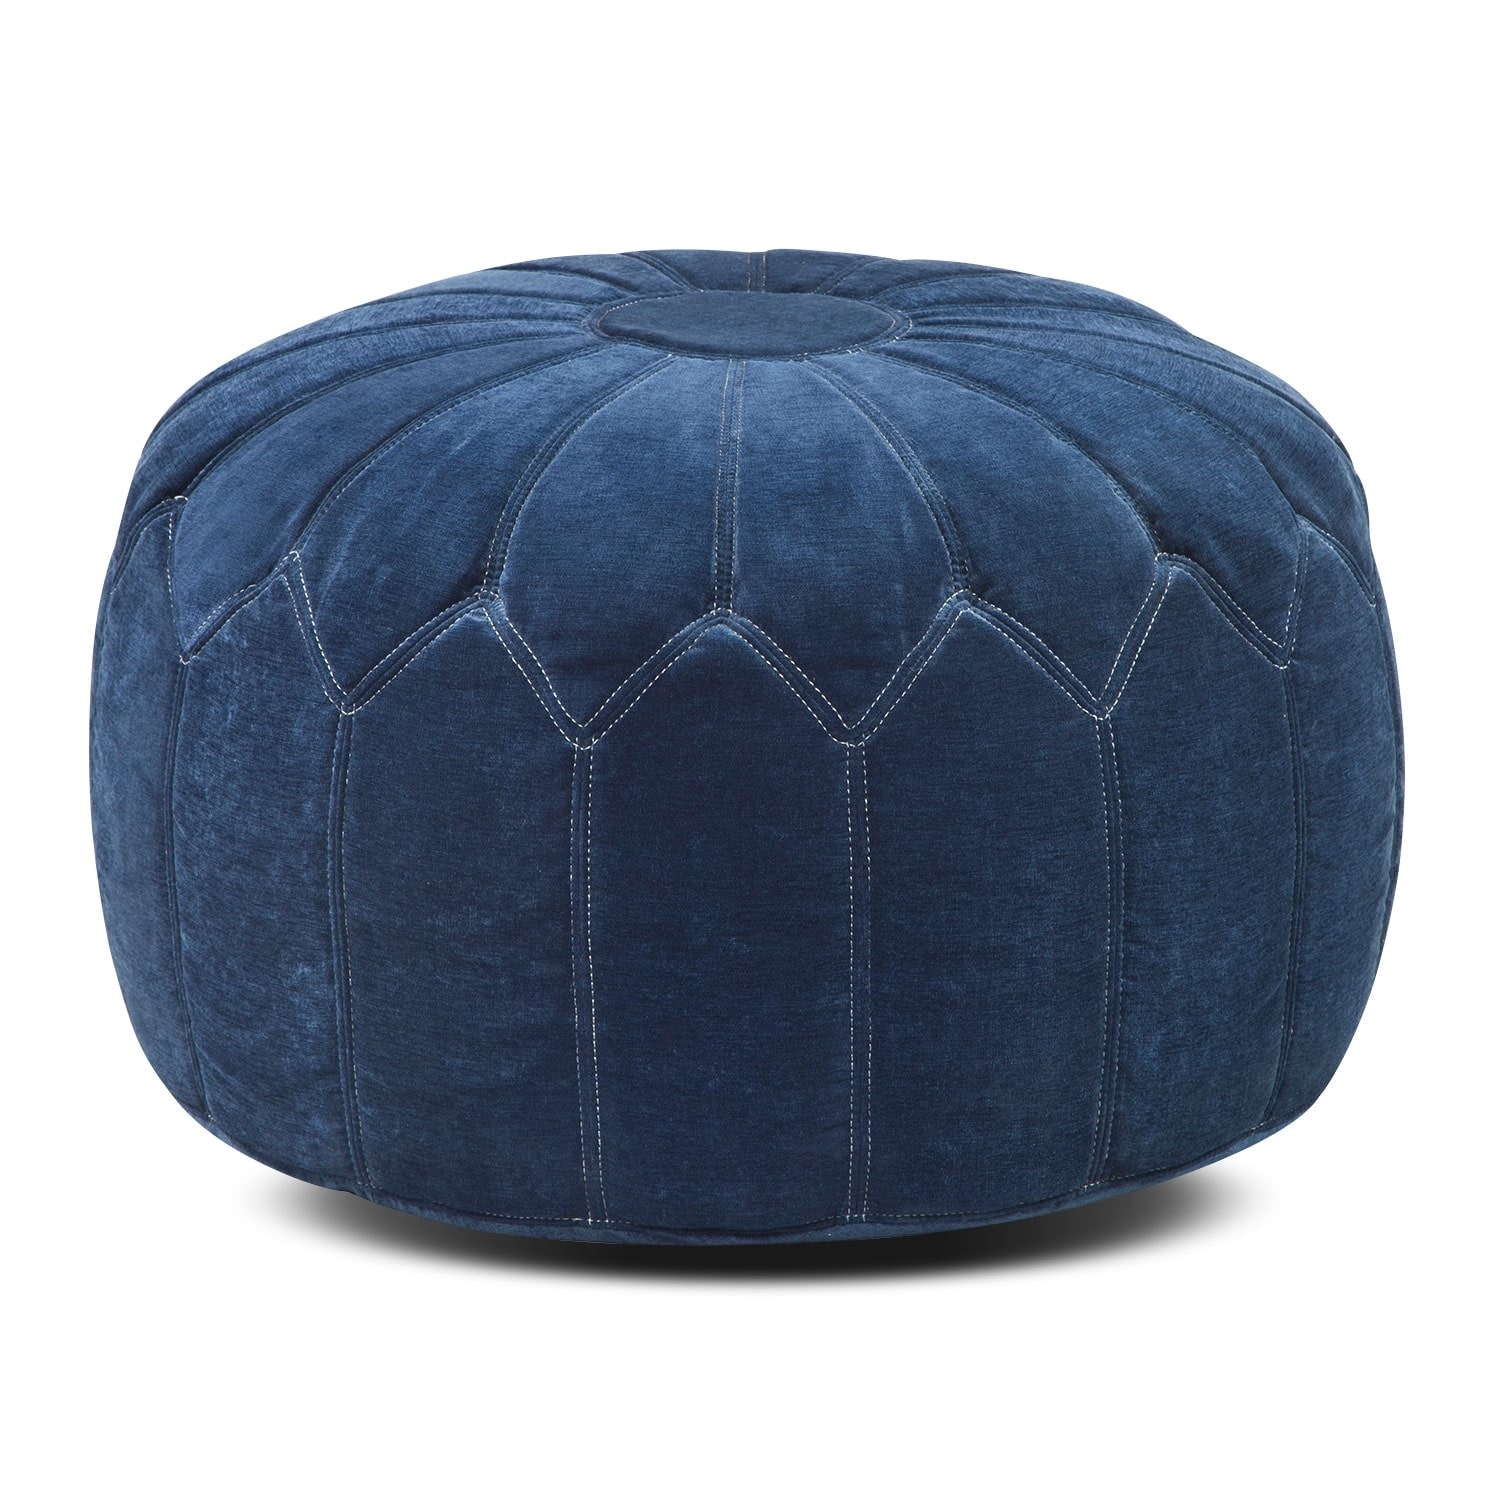 Living Room Furniture - Hobbs Pouf